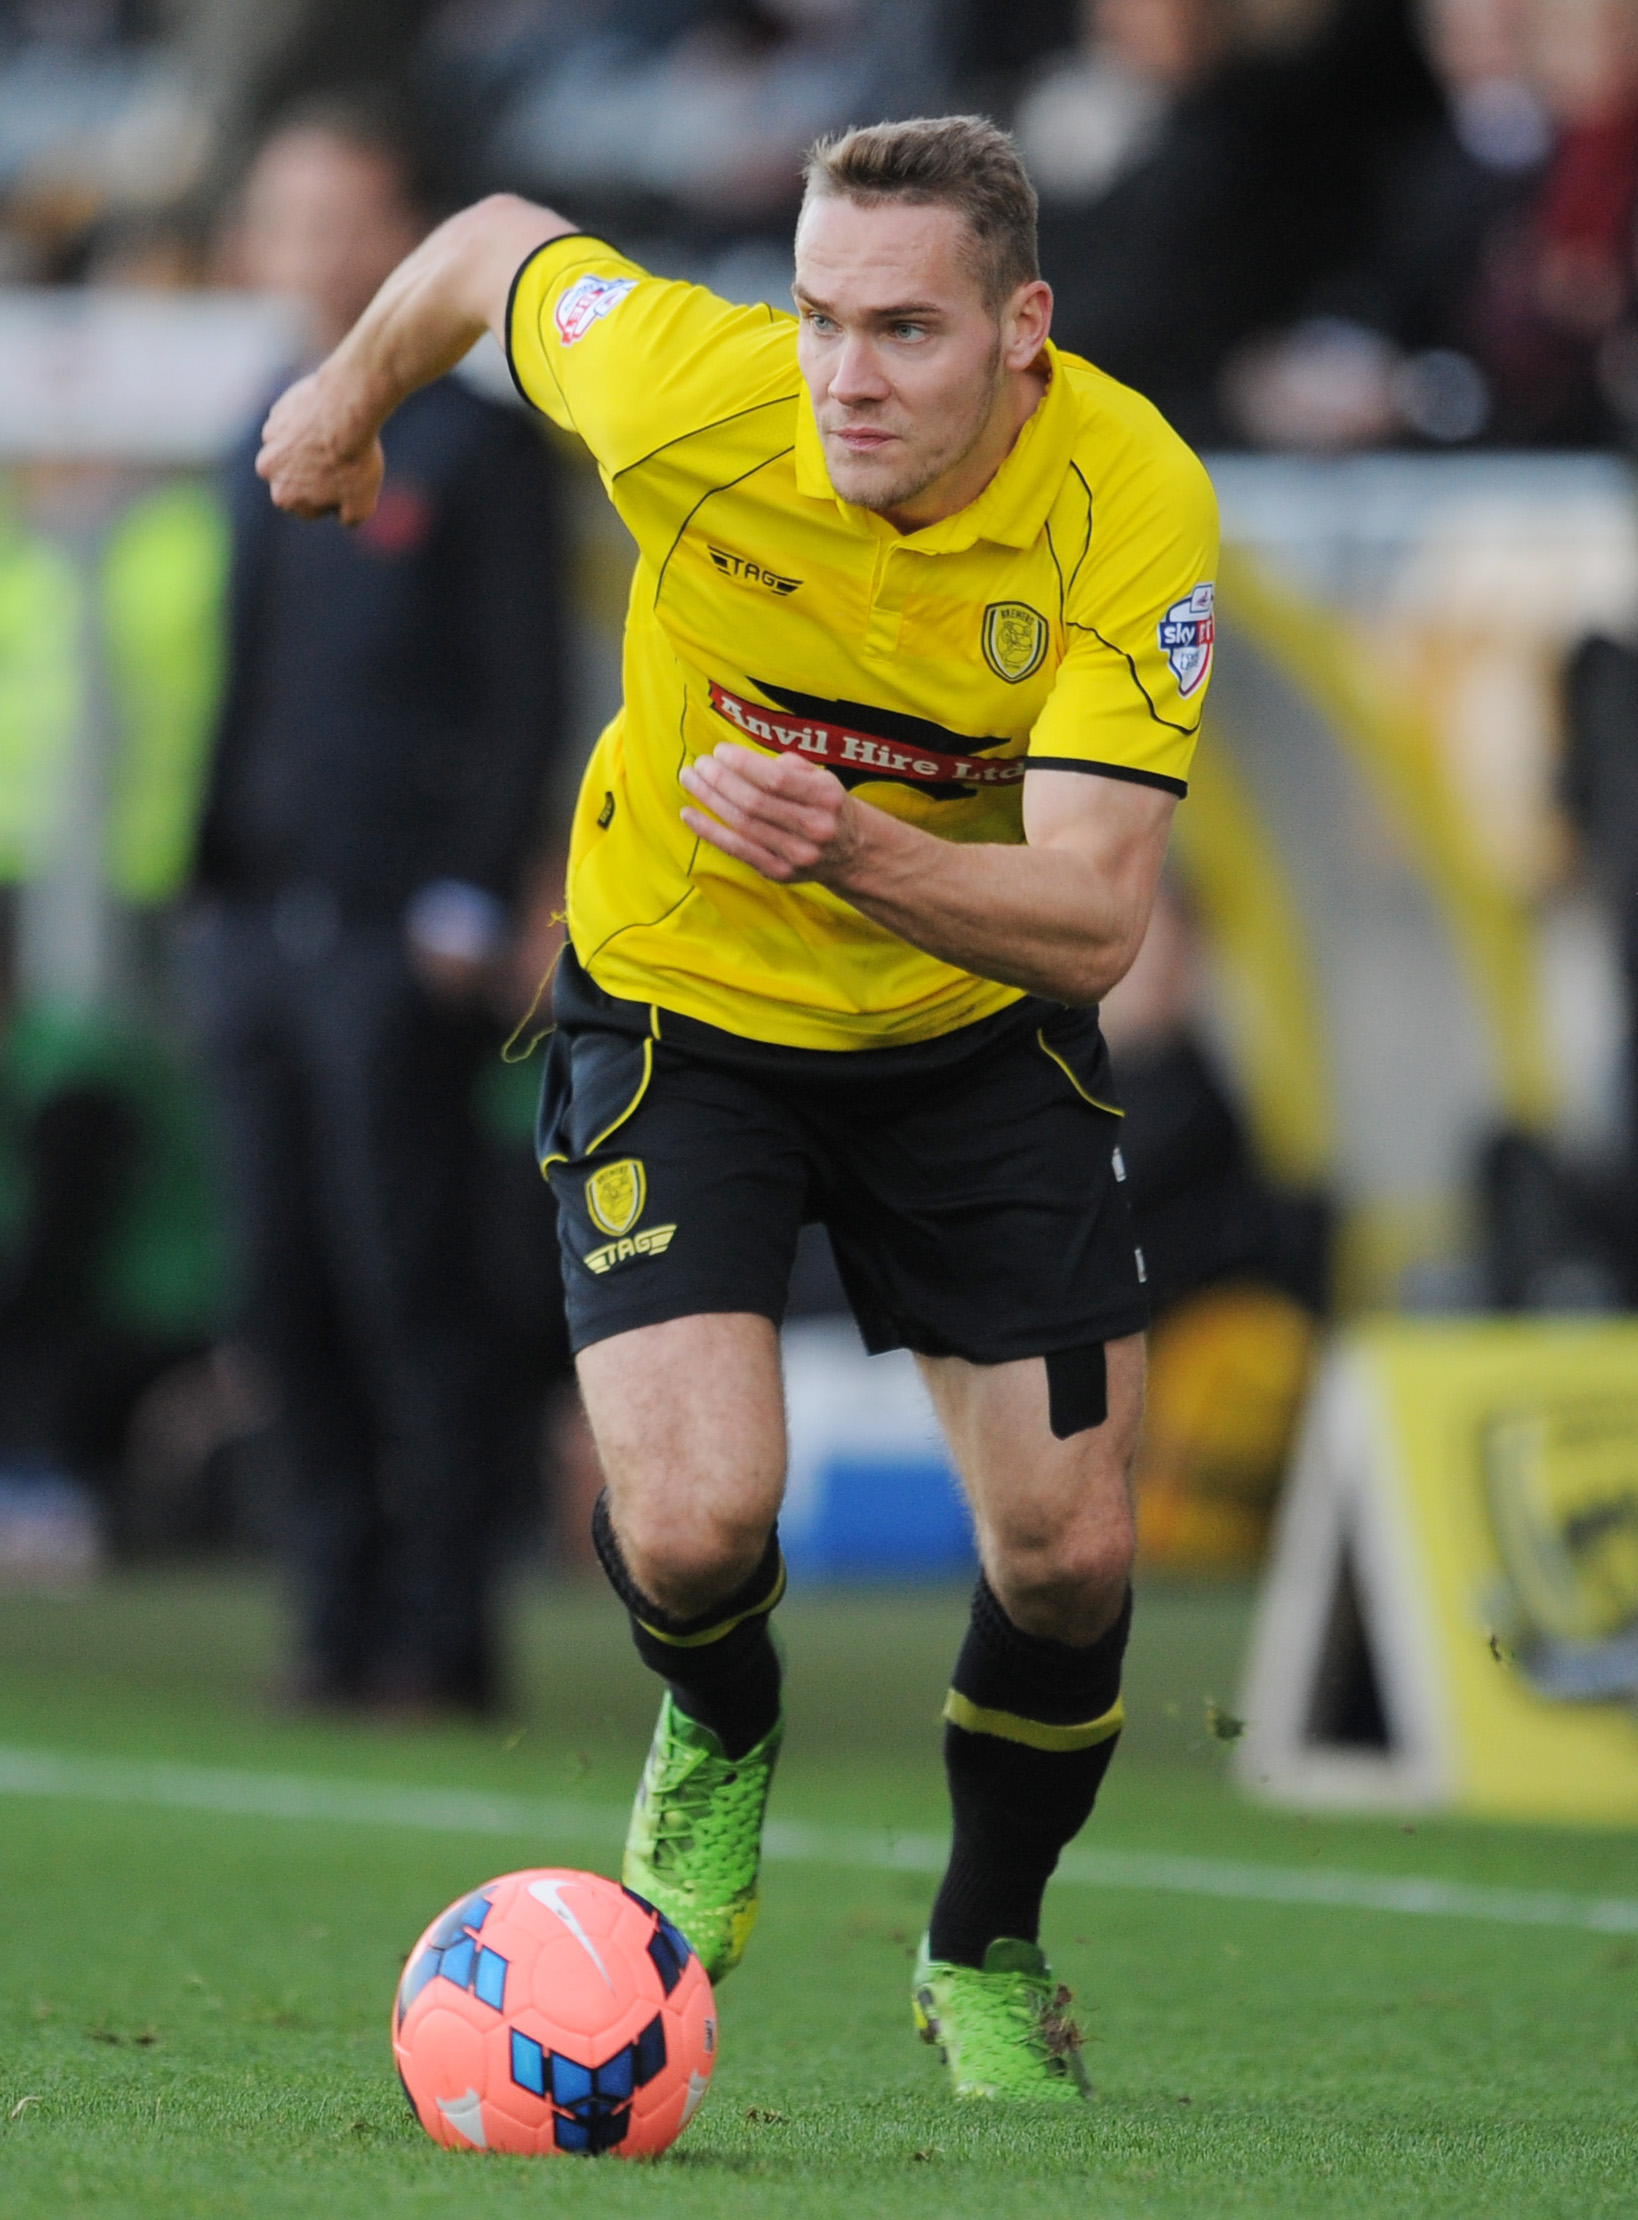 Chris Hussey playing for Burton Albion